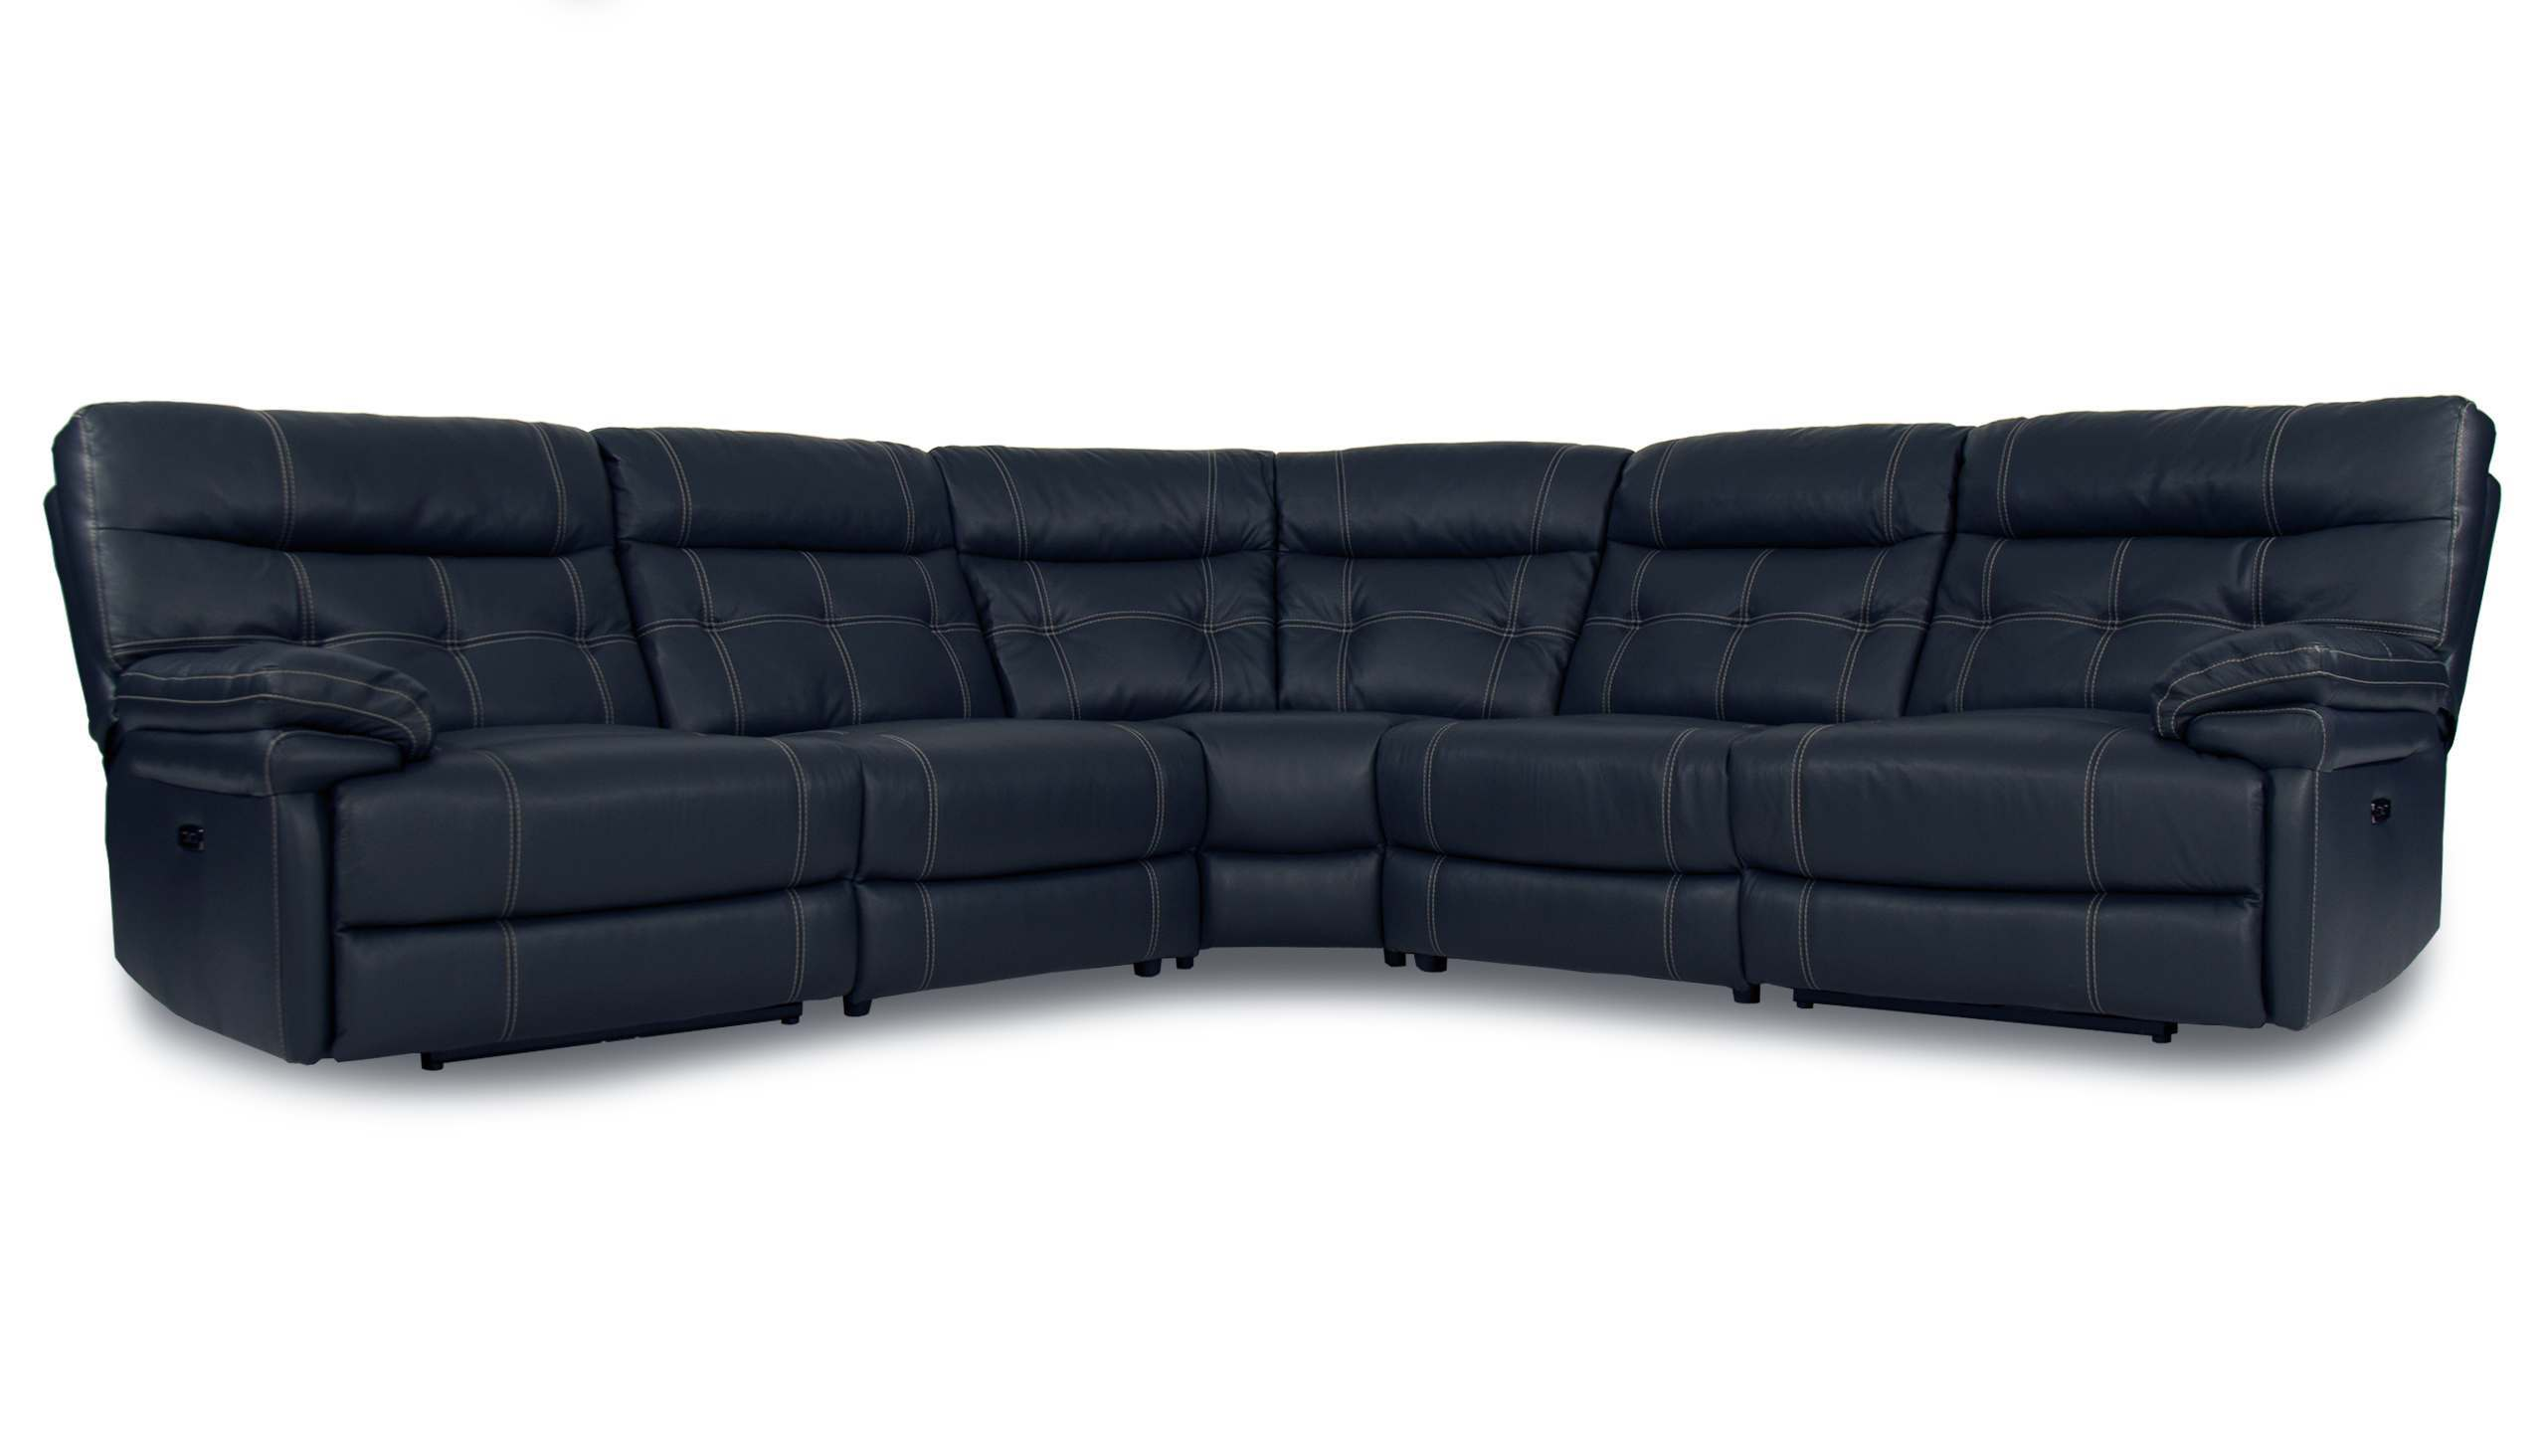 Corsica Large Power Recliner Corner Sofa with Power Headrest in Leather - AHF Furniture & Carpets